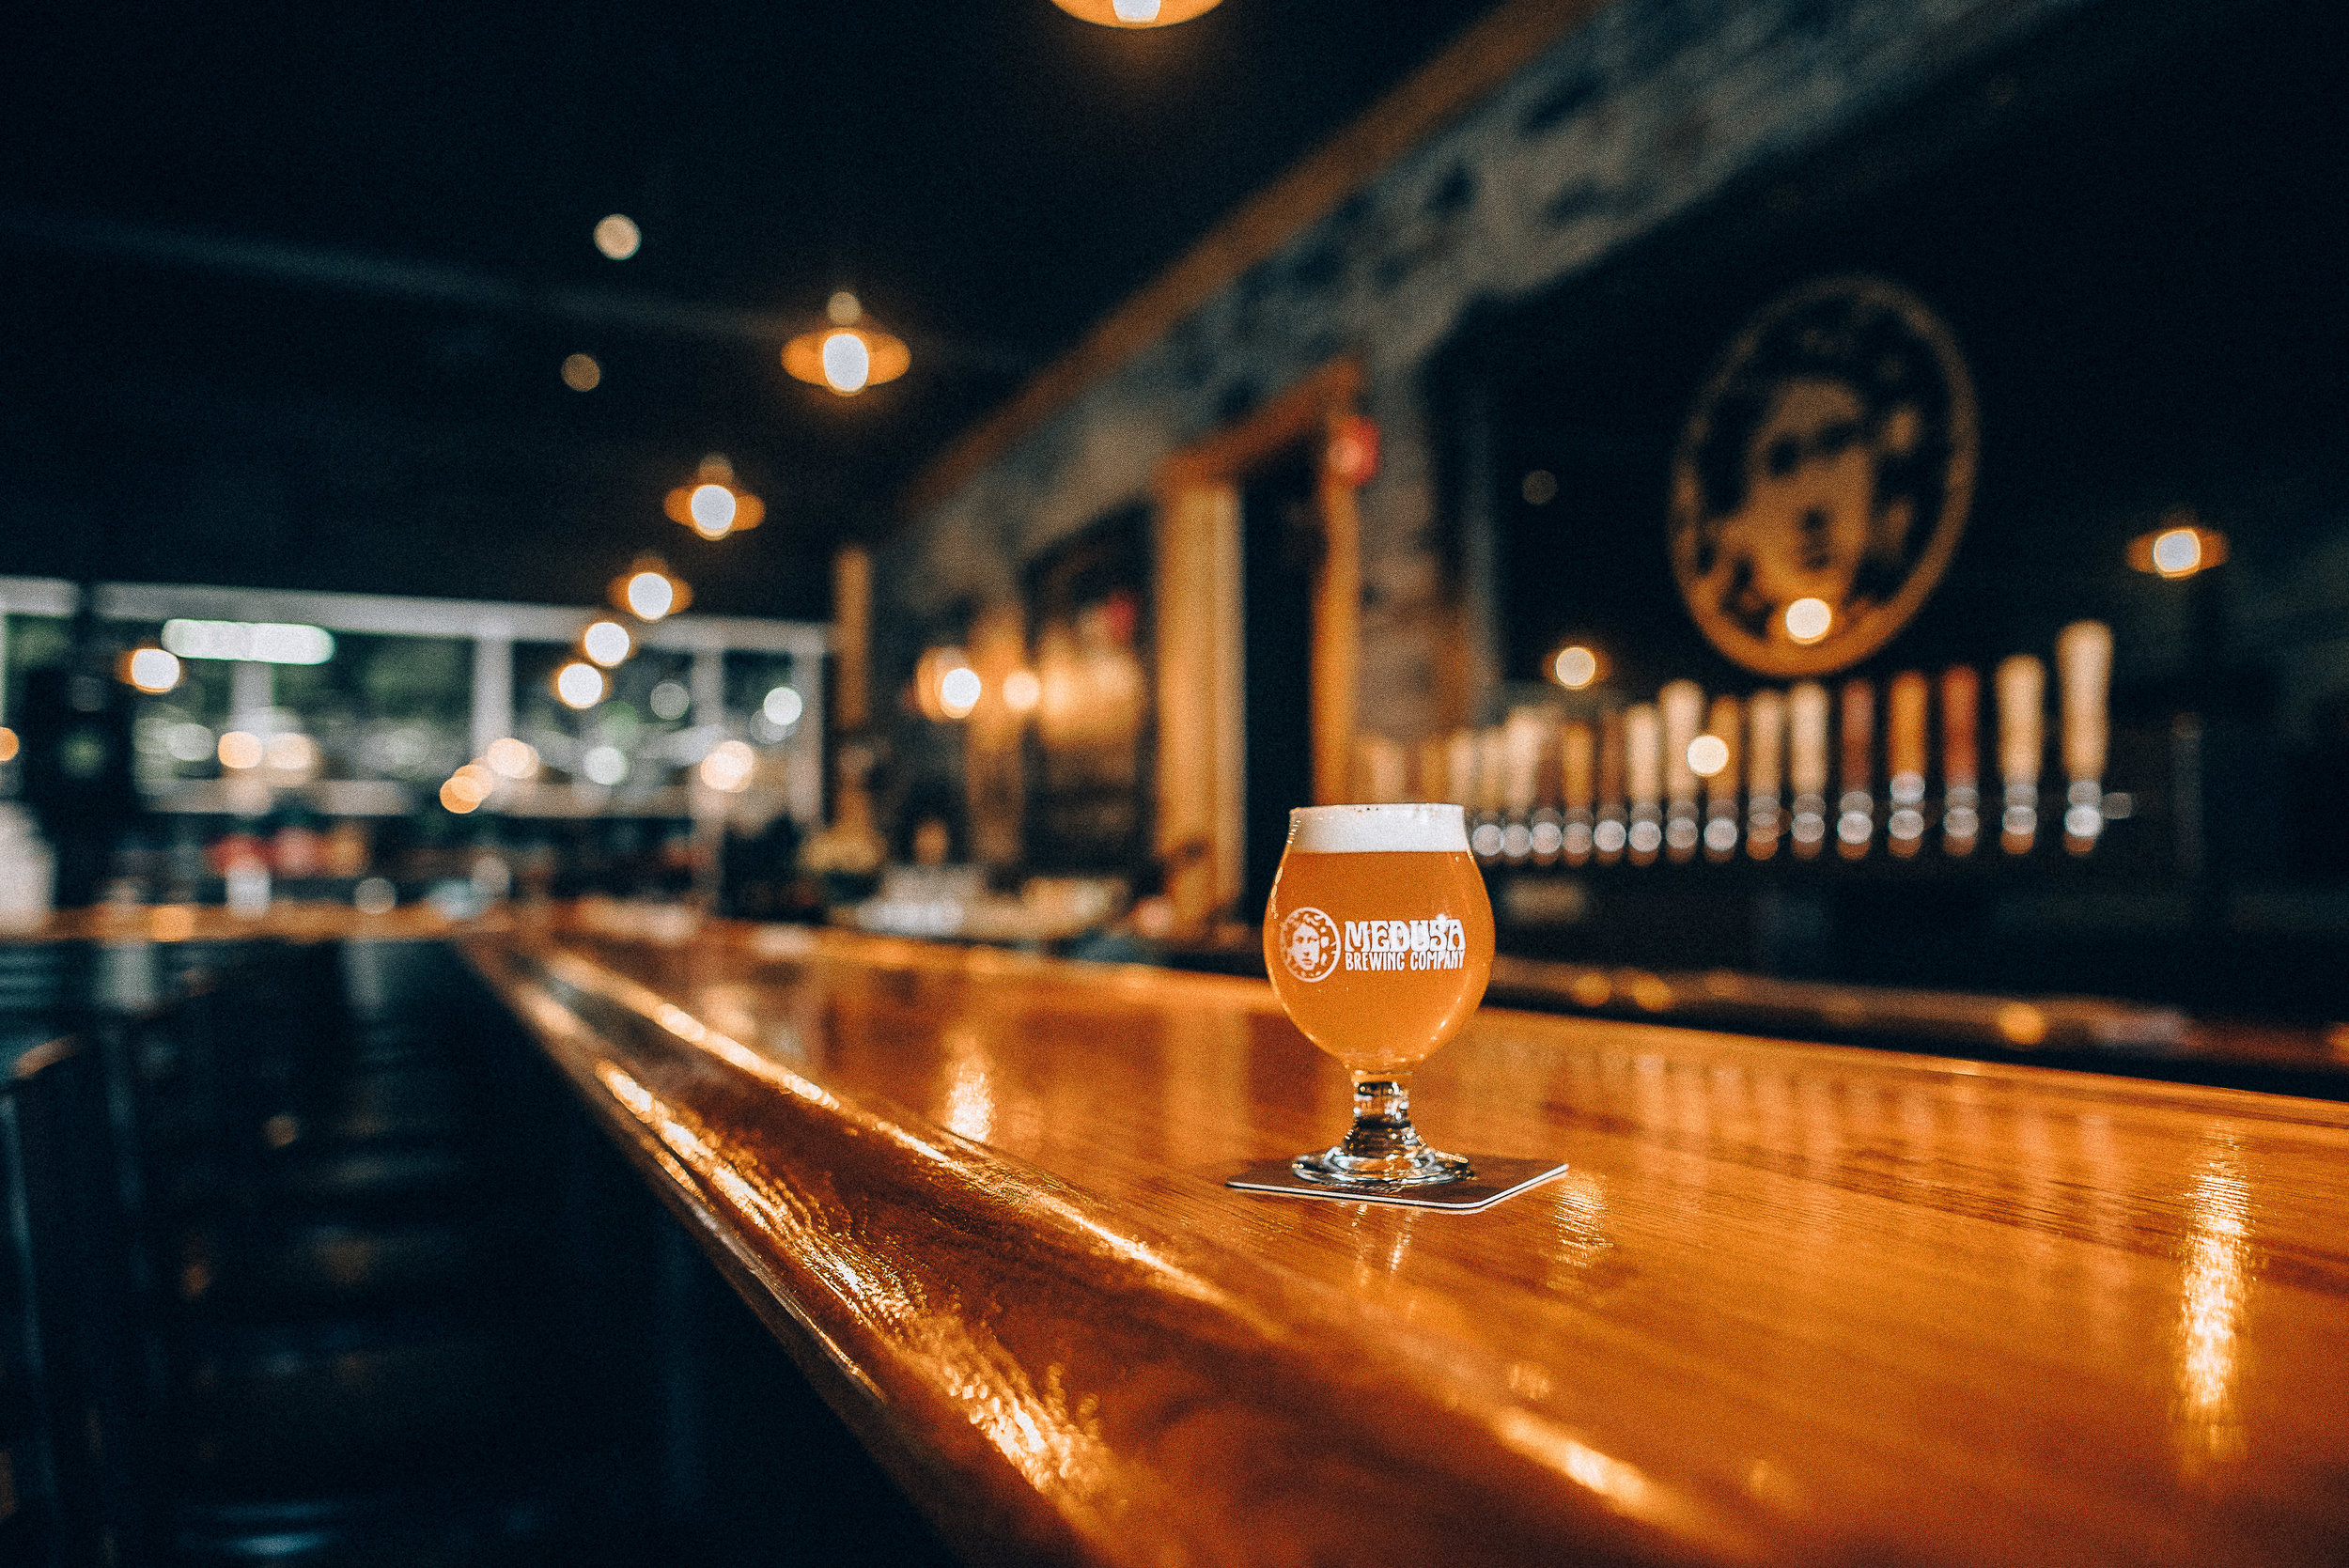 A view of the taproom bar at Medusa Brewing Company in Hudson, MA.   Photo by Elise Meader of  elisemeaderphotography.com